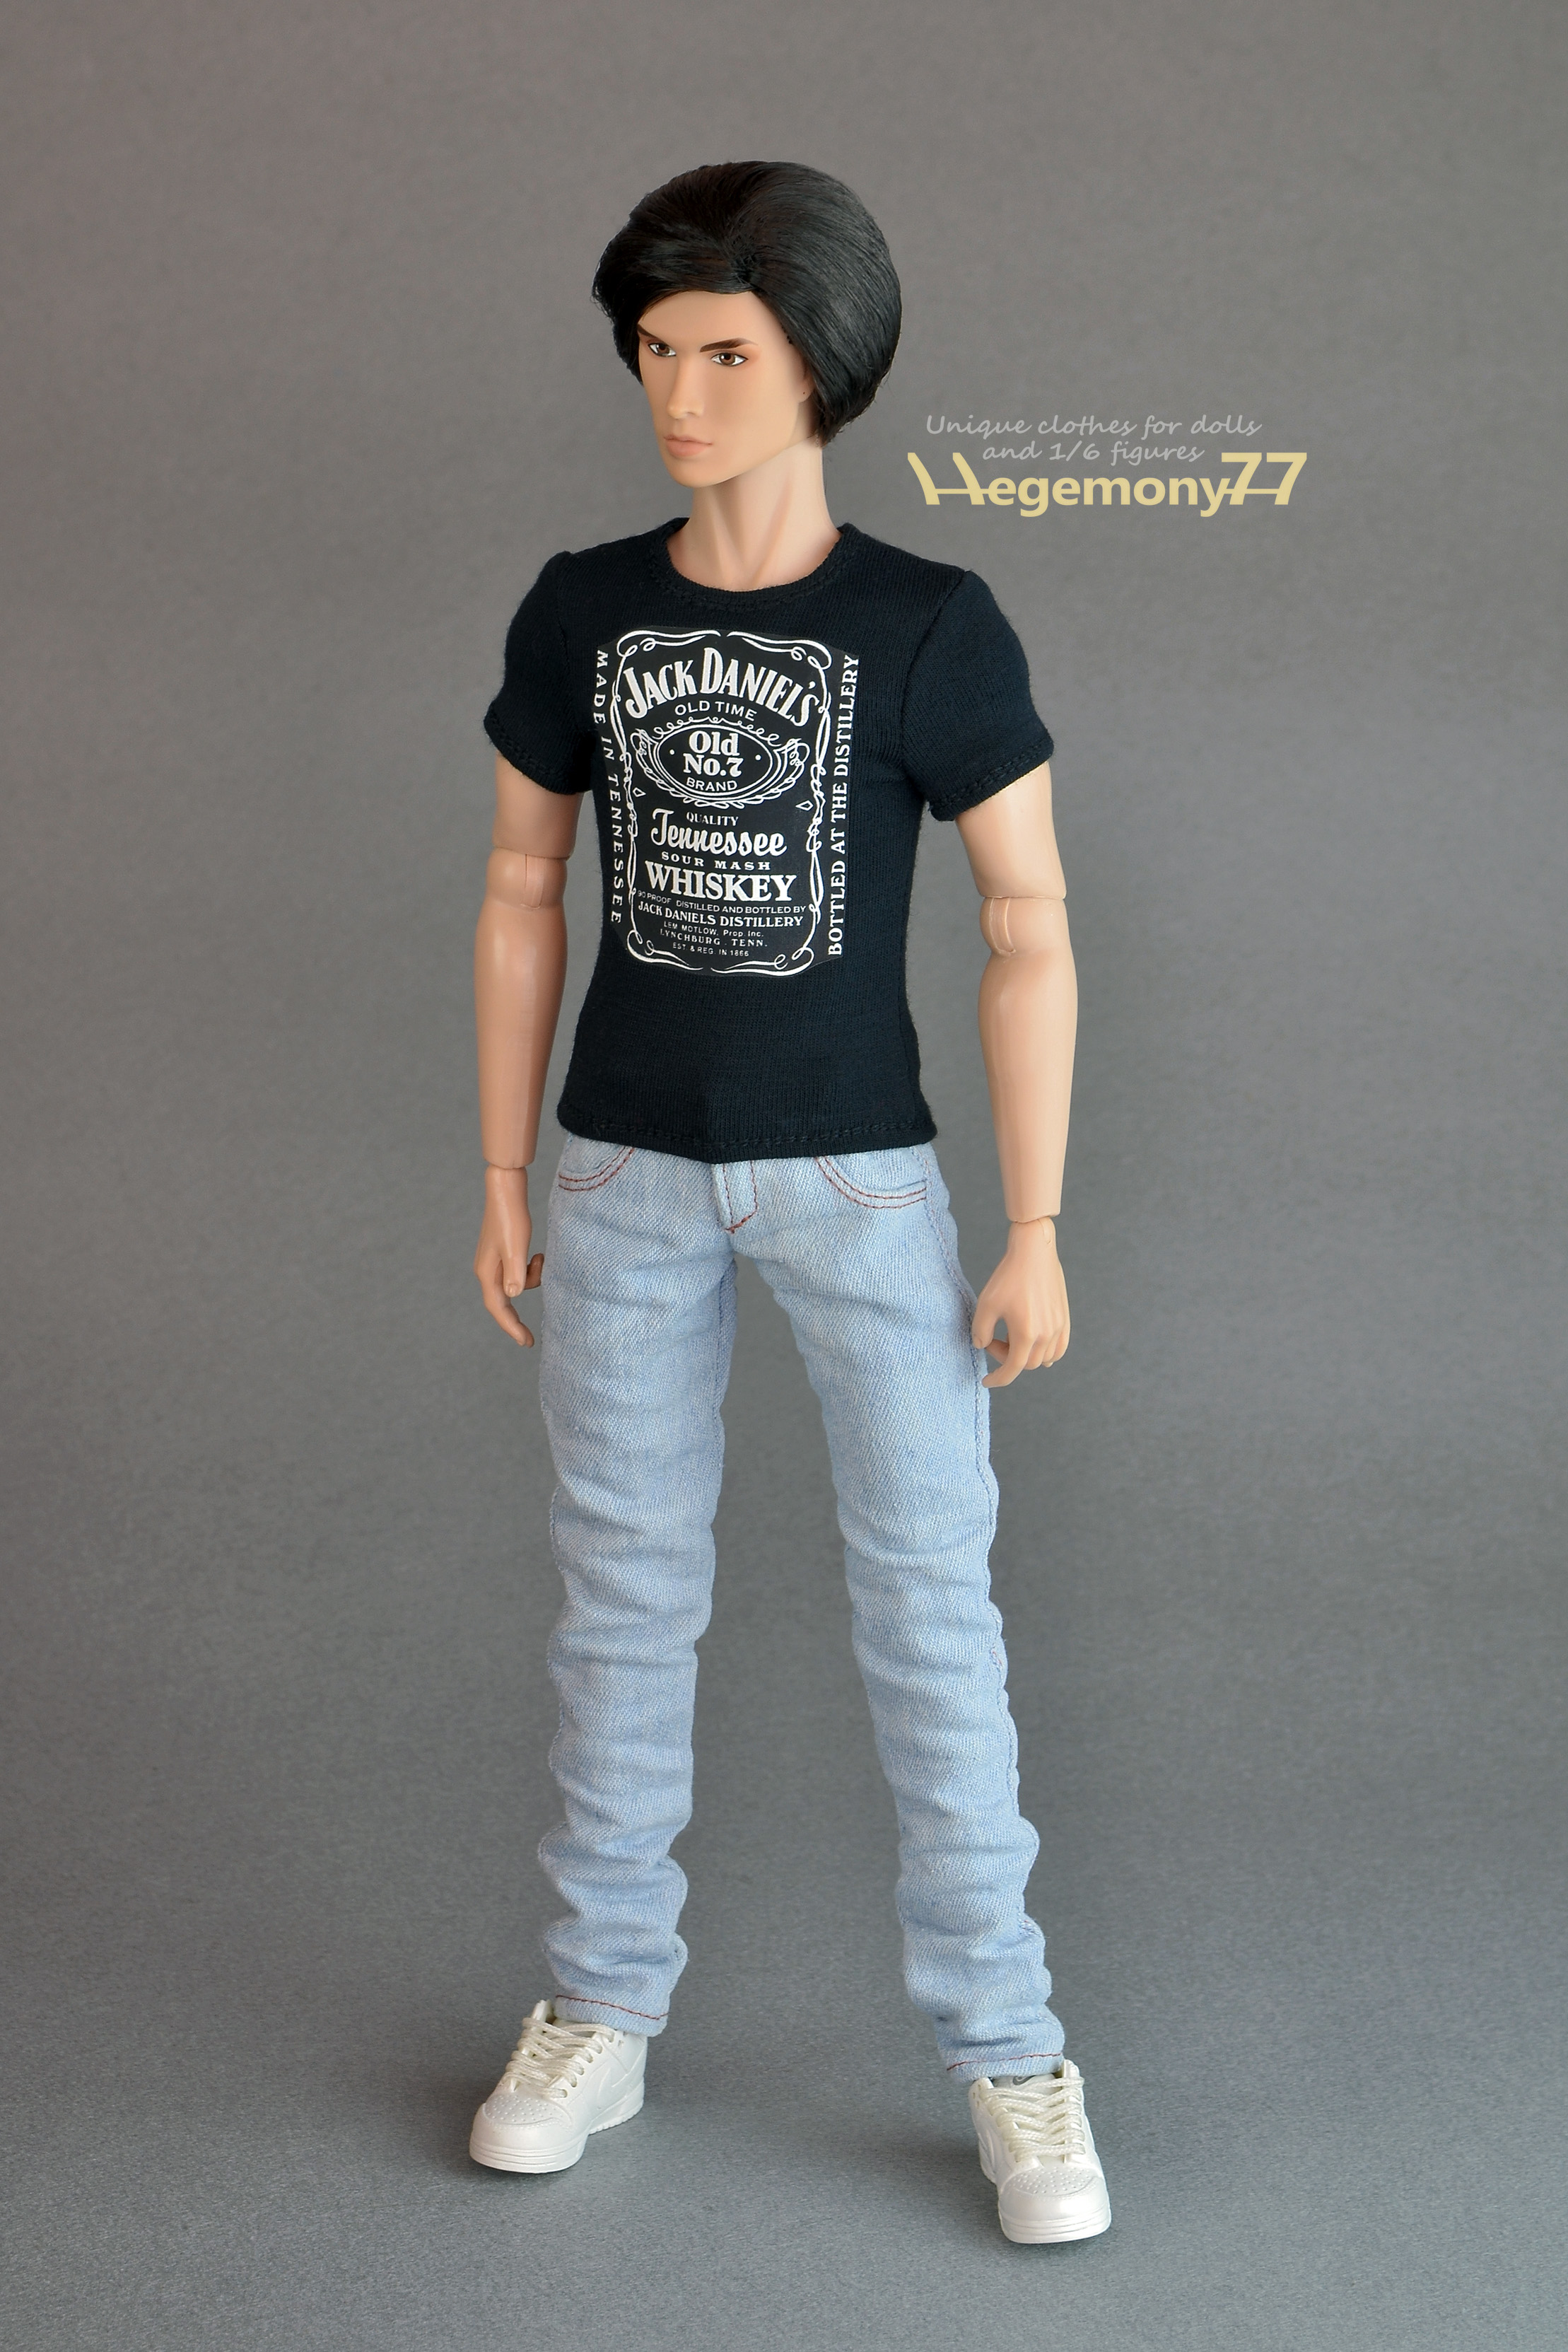 Black t shirt light blue jeans - Fashion Royalty Homme Male Doll In Custom T Shirt And Blue Jeans Pants Jpg